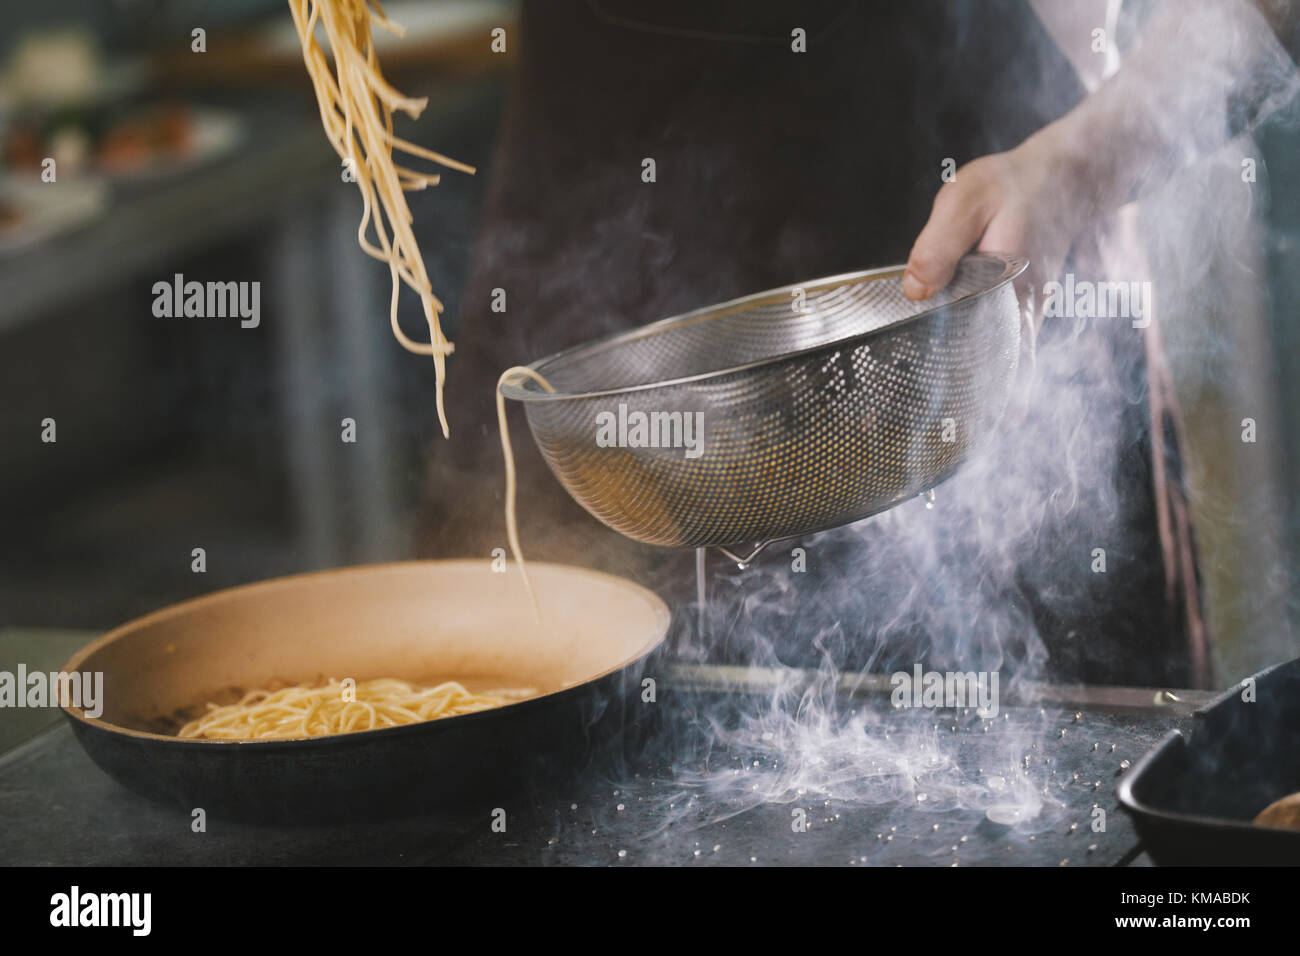 Cooking spaghetti in restaurant - Stock Image